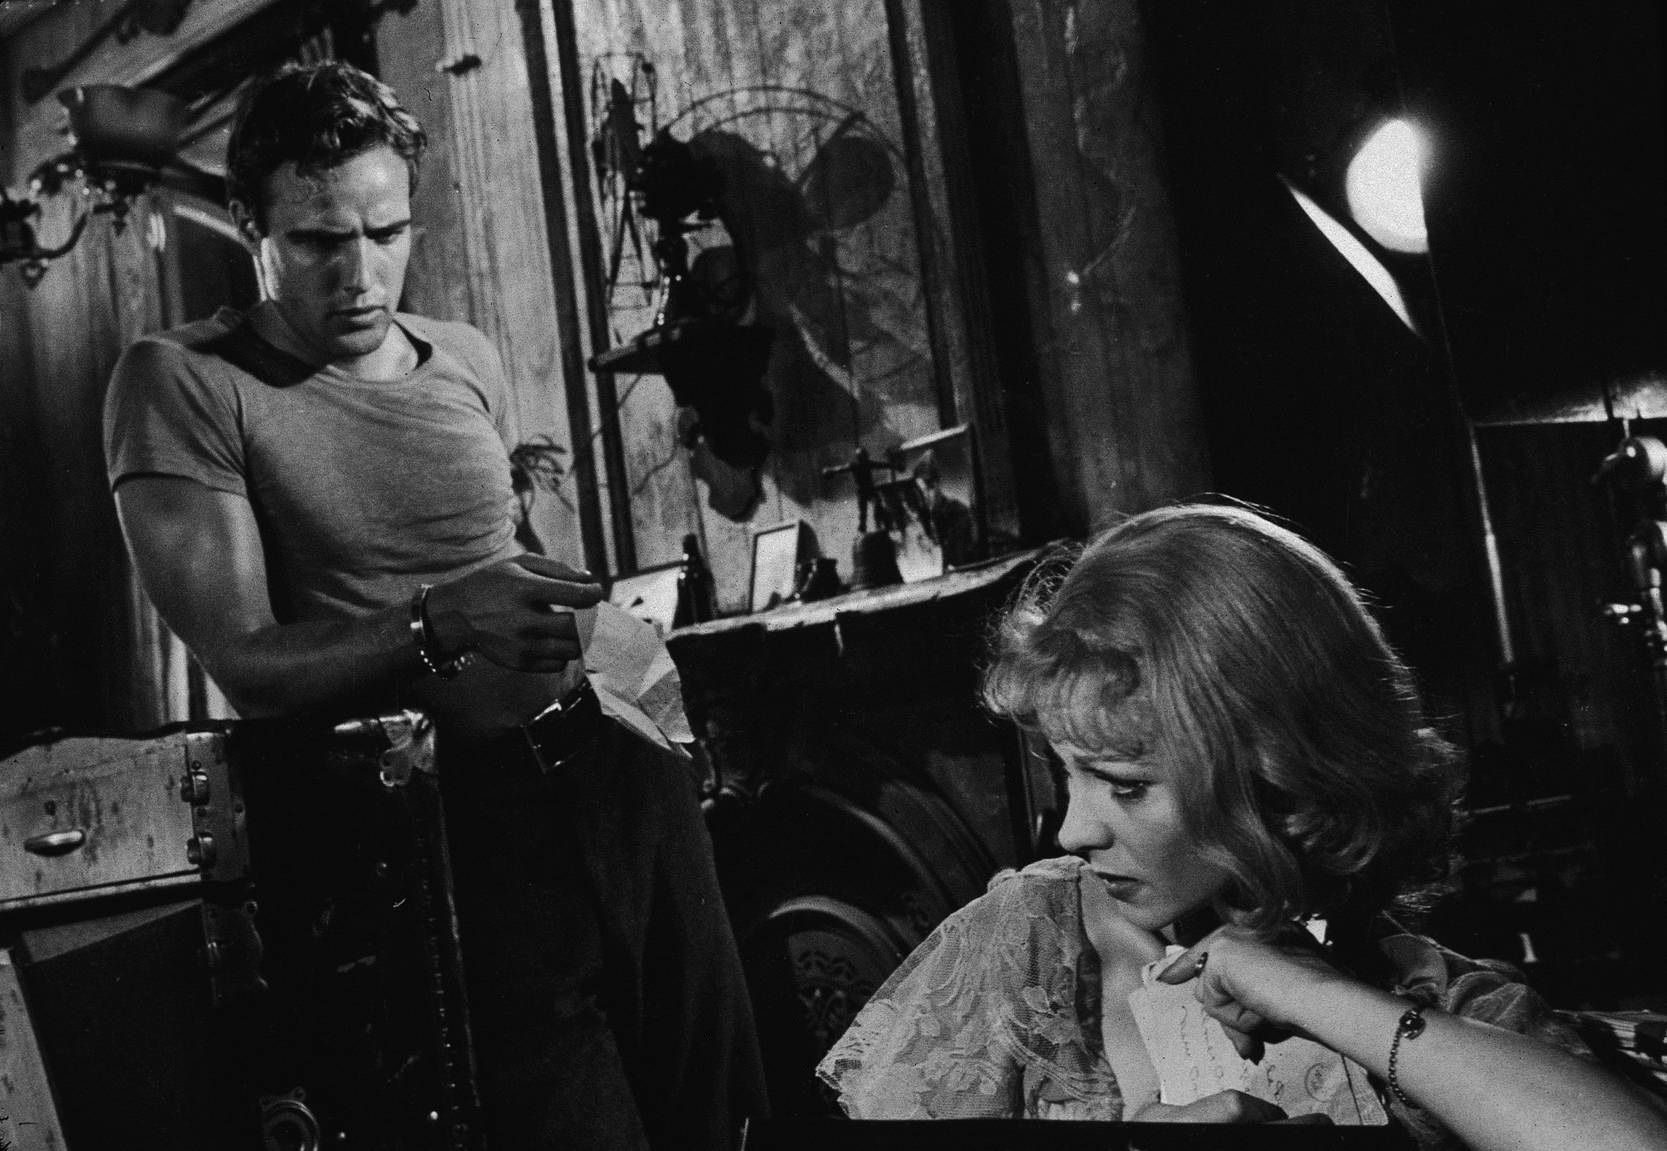 An image of Stanley and Blanche from A Streetcar named desire